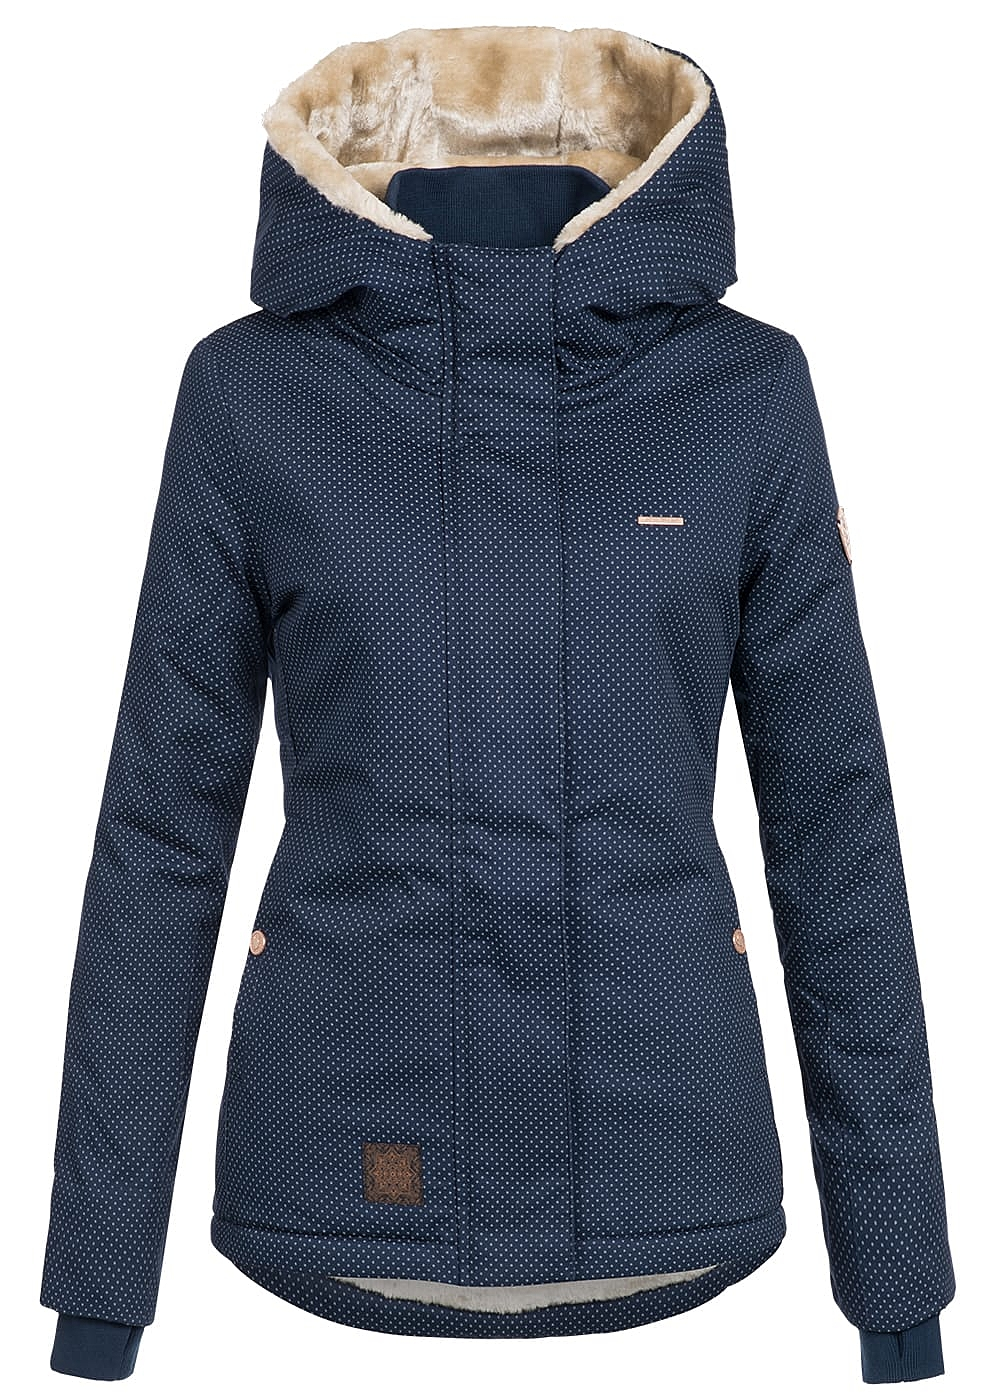 Aiki damen winter jacke navy blau